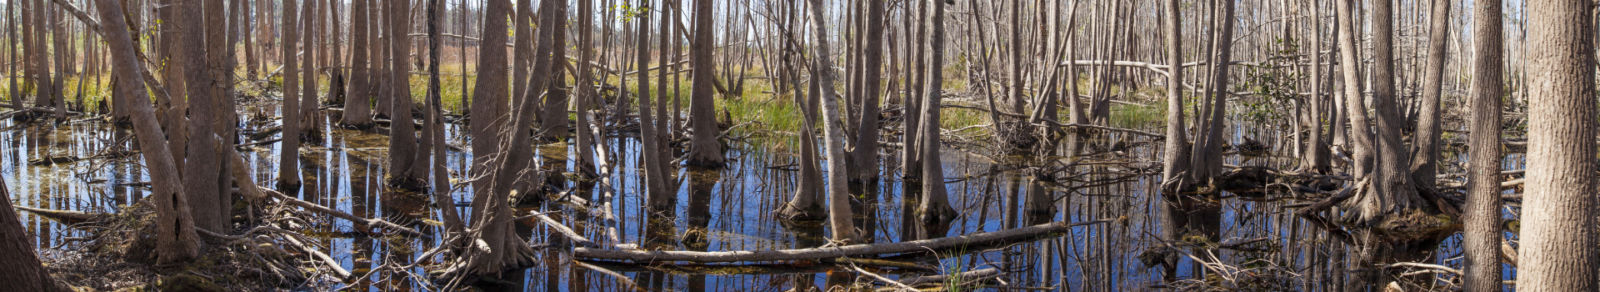 Swamp land, marsh in Louisiana